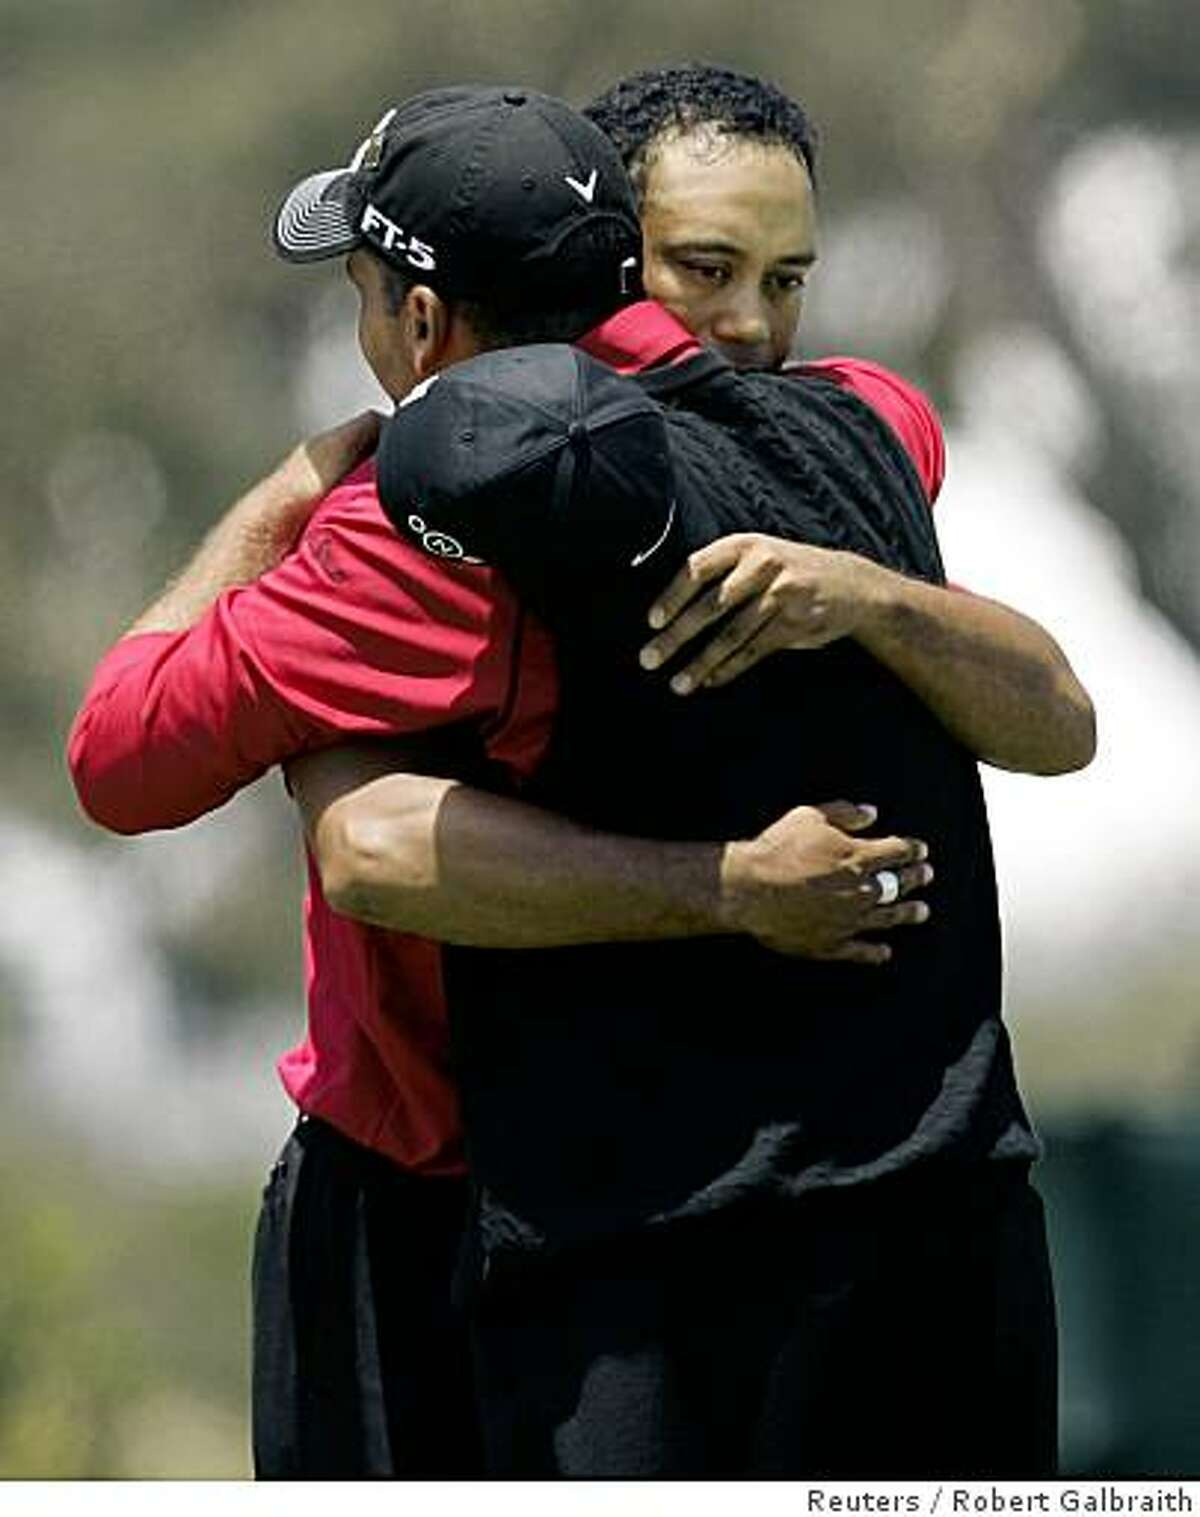 Rocco Mediate (front) and Tiger Woods hug after Woods won the playoff round of the U.S. Open golf championship at Torrey Pines in San Diego June 16, 2008. REUTERS/Robert Galbraith (UNITED STATES)